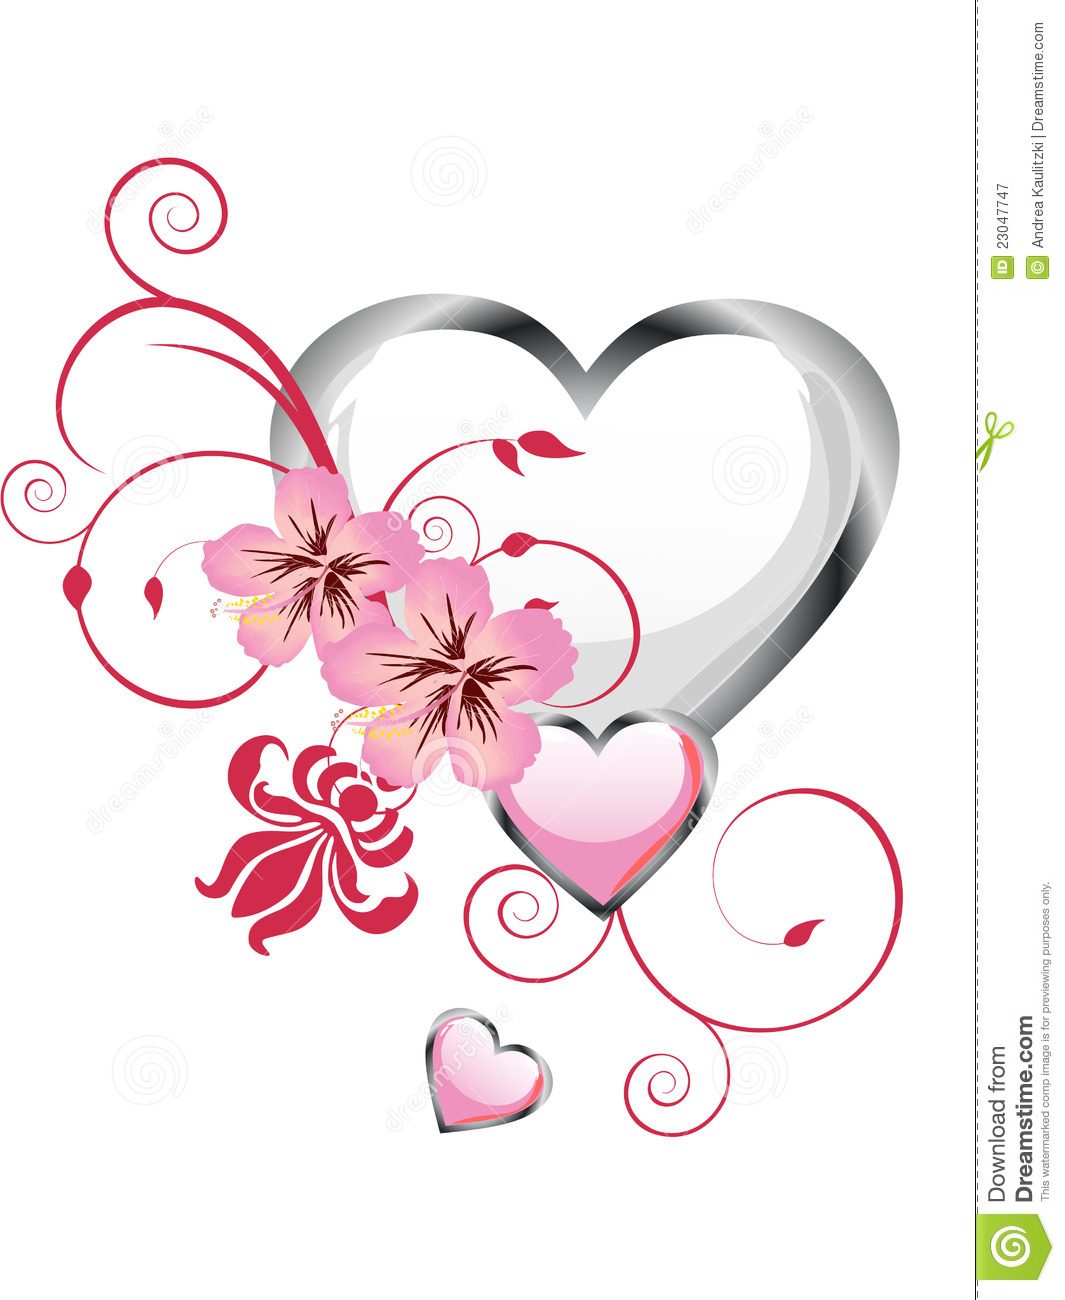 Floral Heart Design Royalty Free Stock Photography Image 23047747